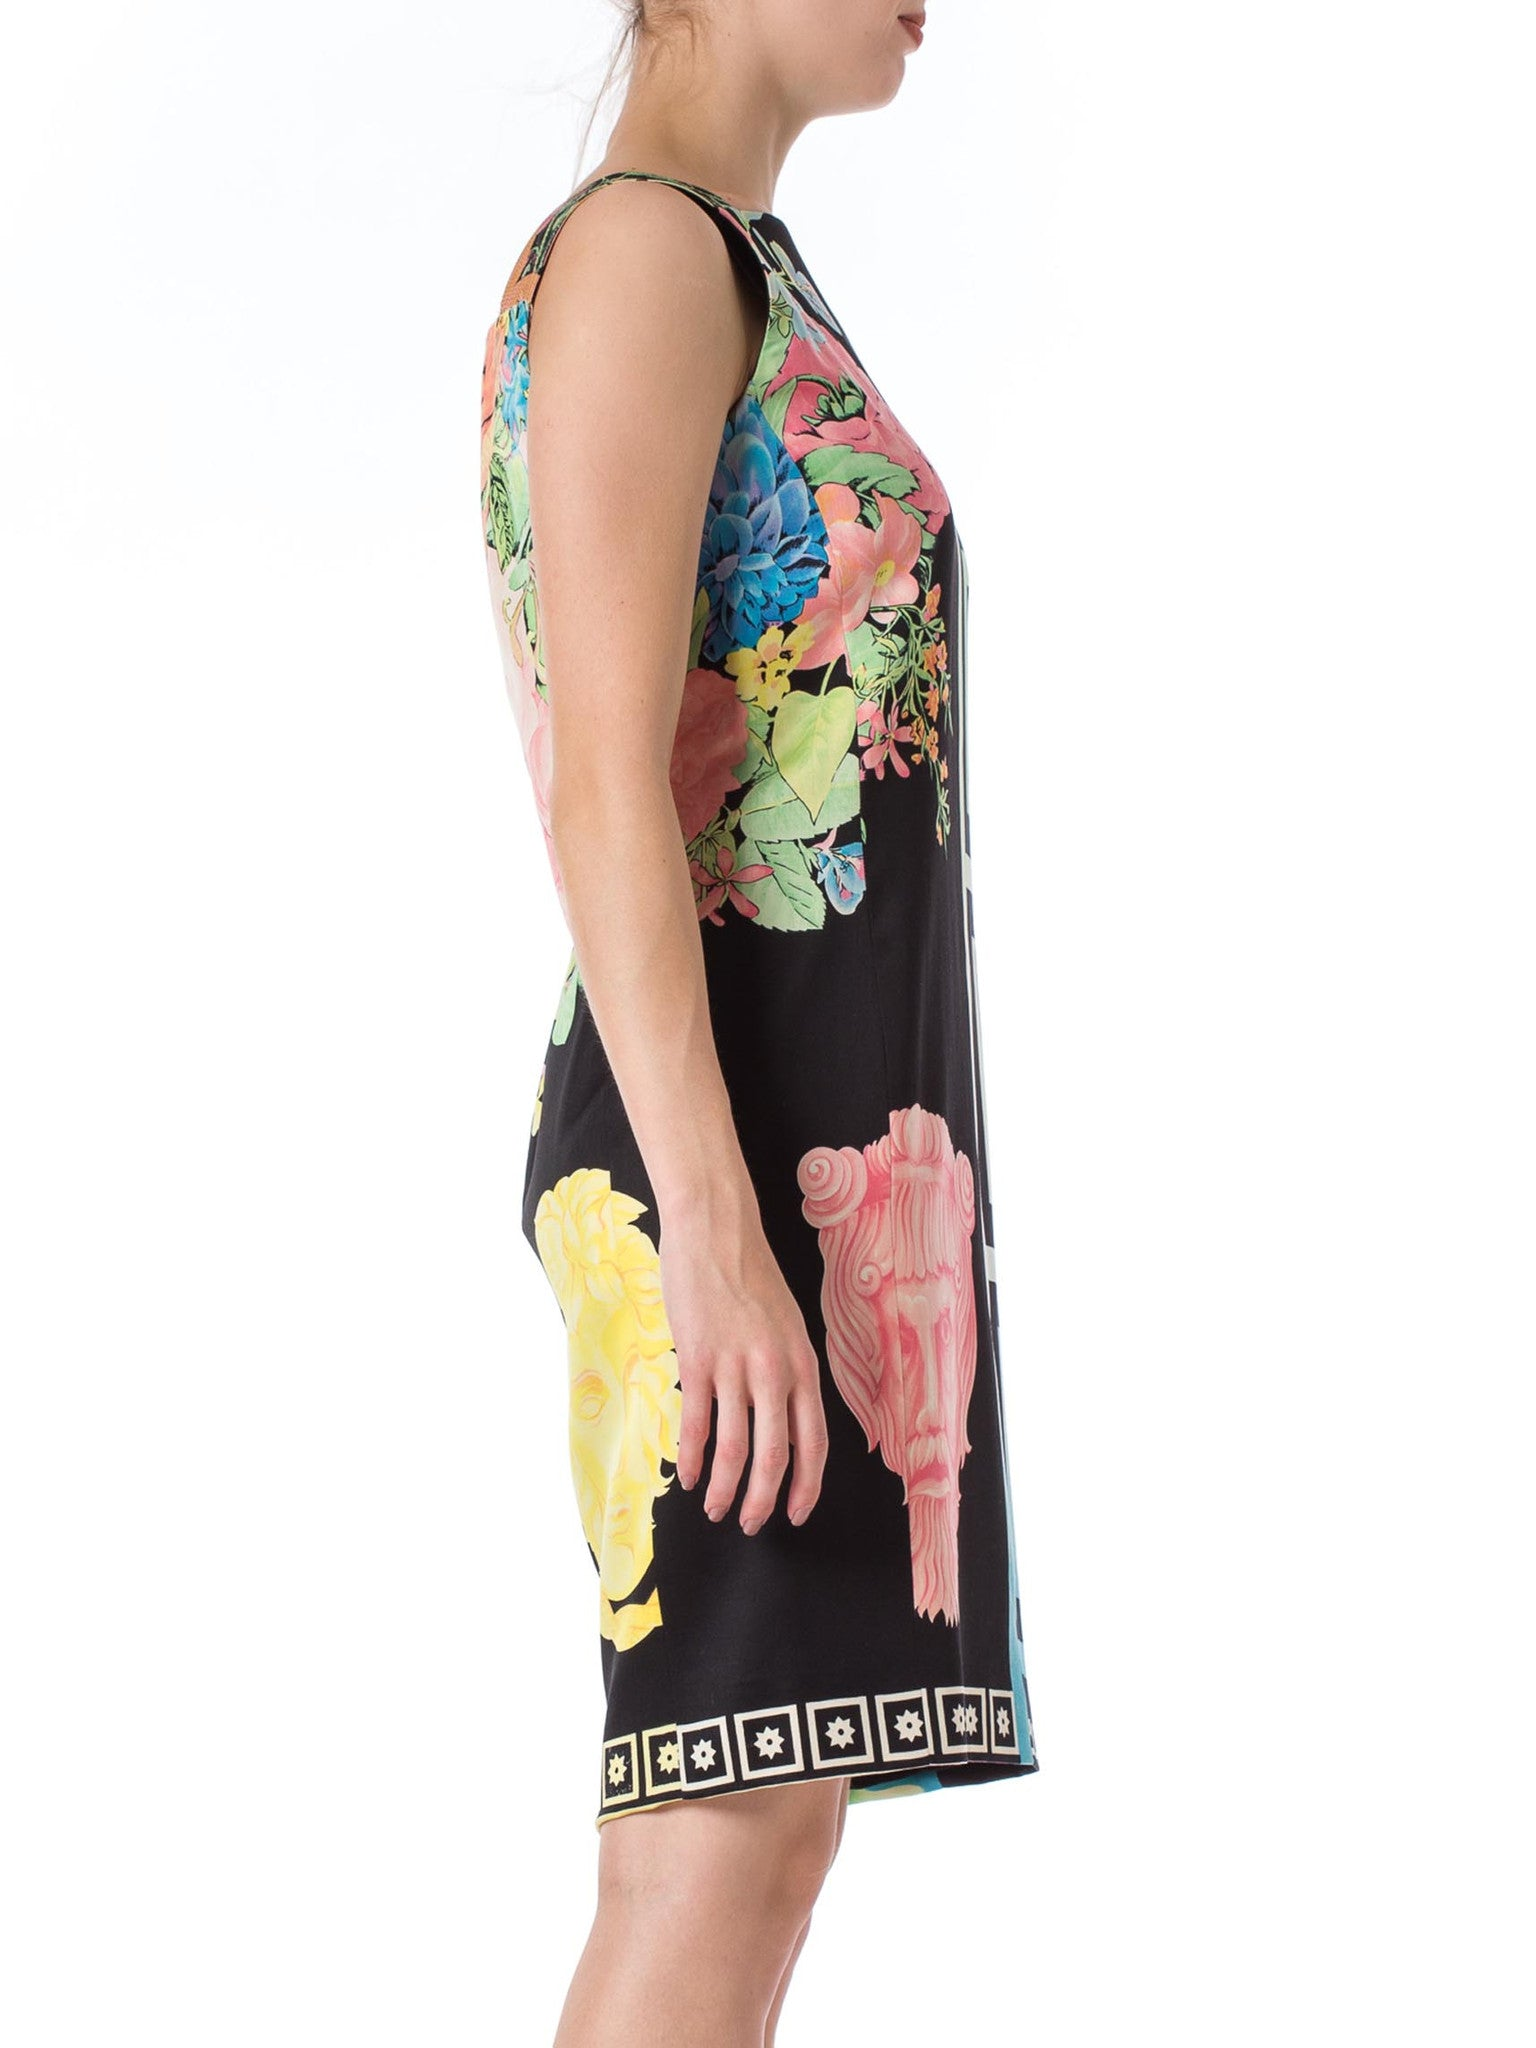 1990S GIANNI VERSACE Pastel & Black Wool Blend Sateen Tropical Floral Dress With Classical Greek Designs